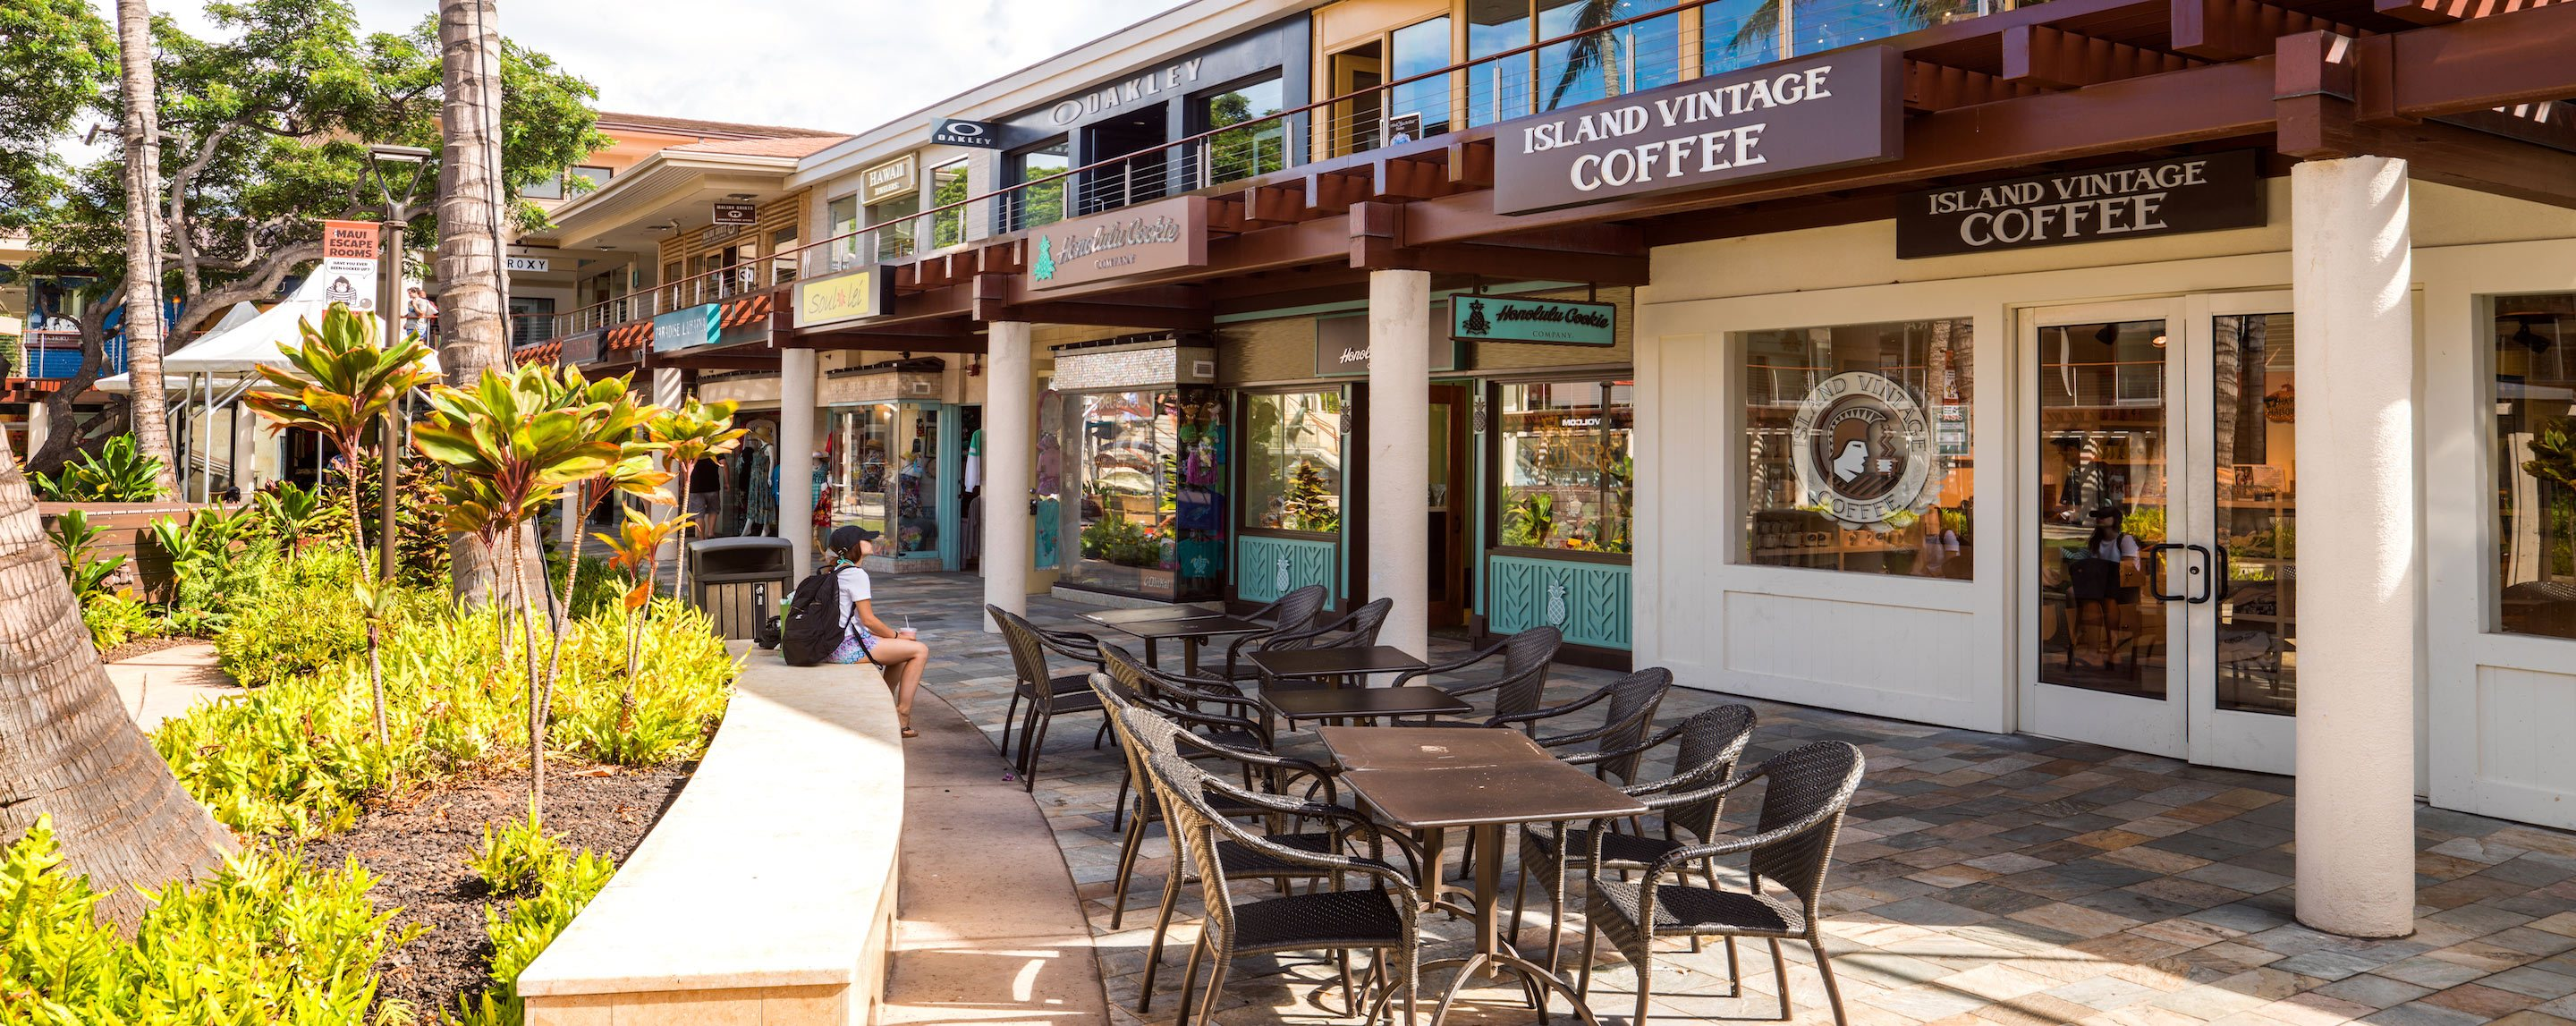 Tables and benches stand outside store fronts in an outdoor mall. The stores include Lava and Starbucks.